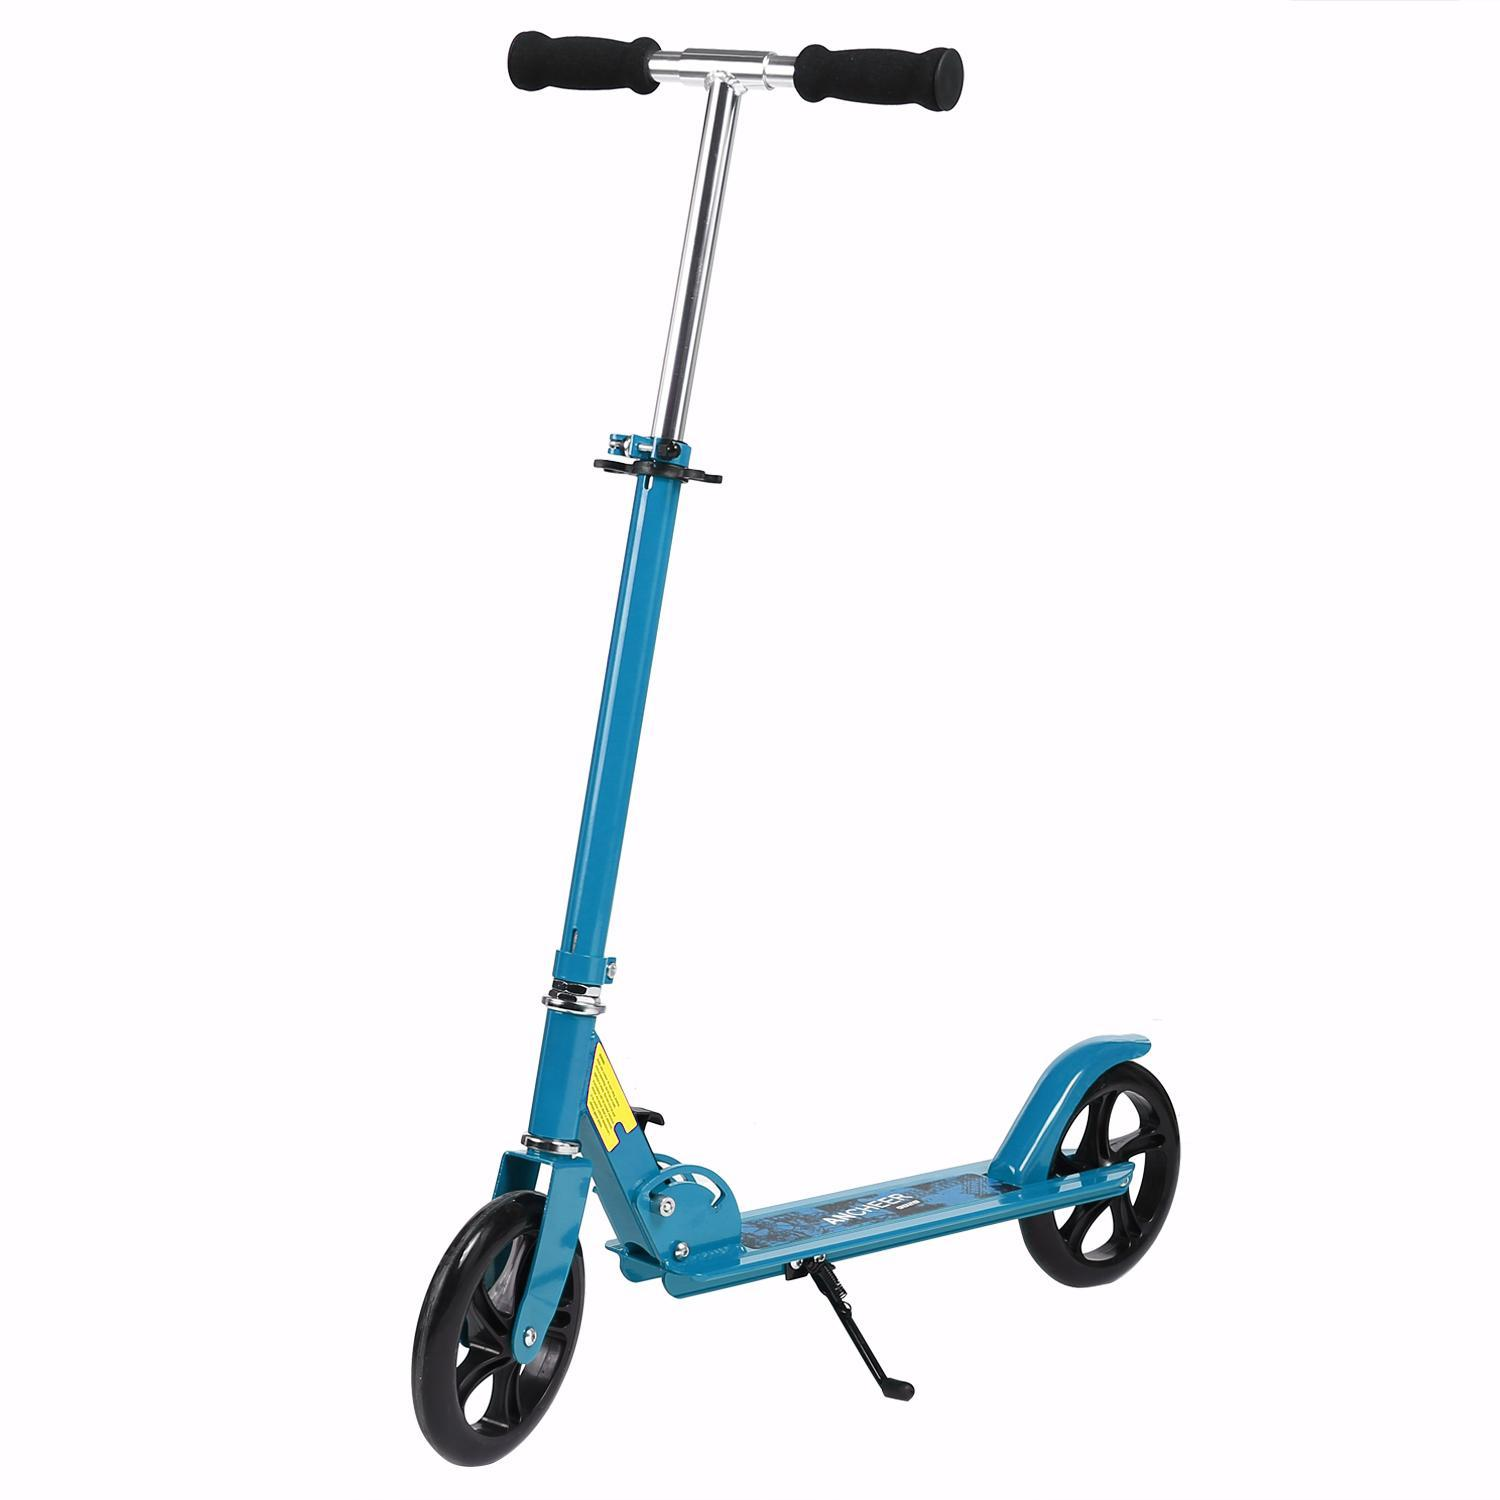 2-Wheels Adult Folding Scooter Aluminium Alloy Kick Scooter Height Adjustable by